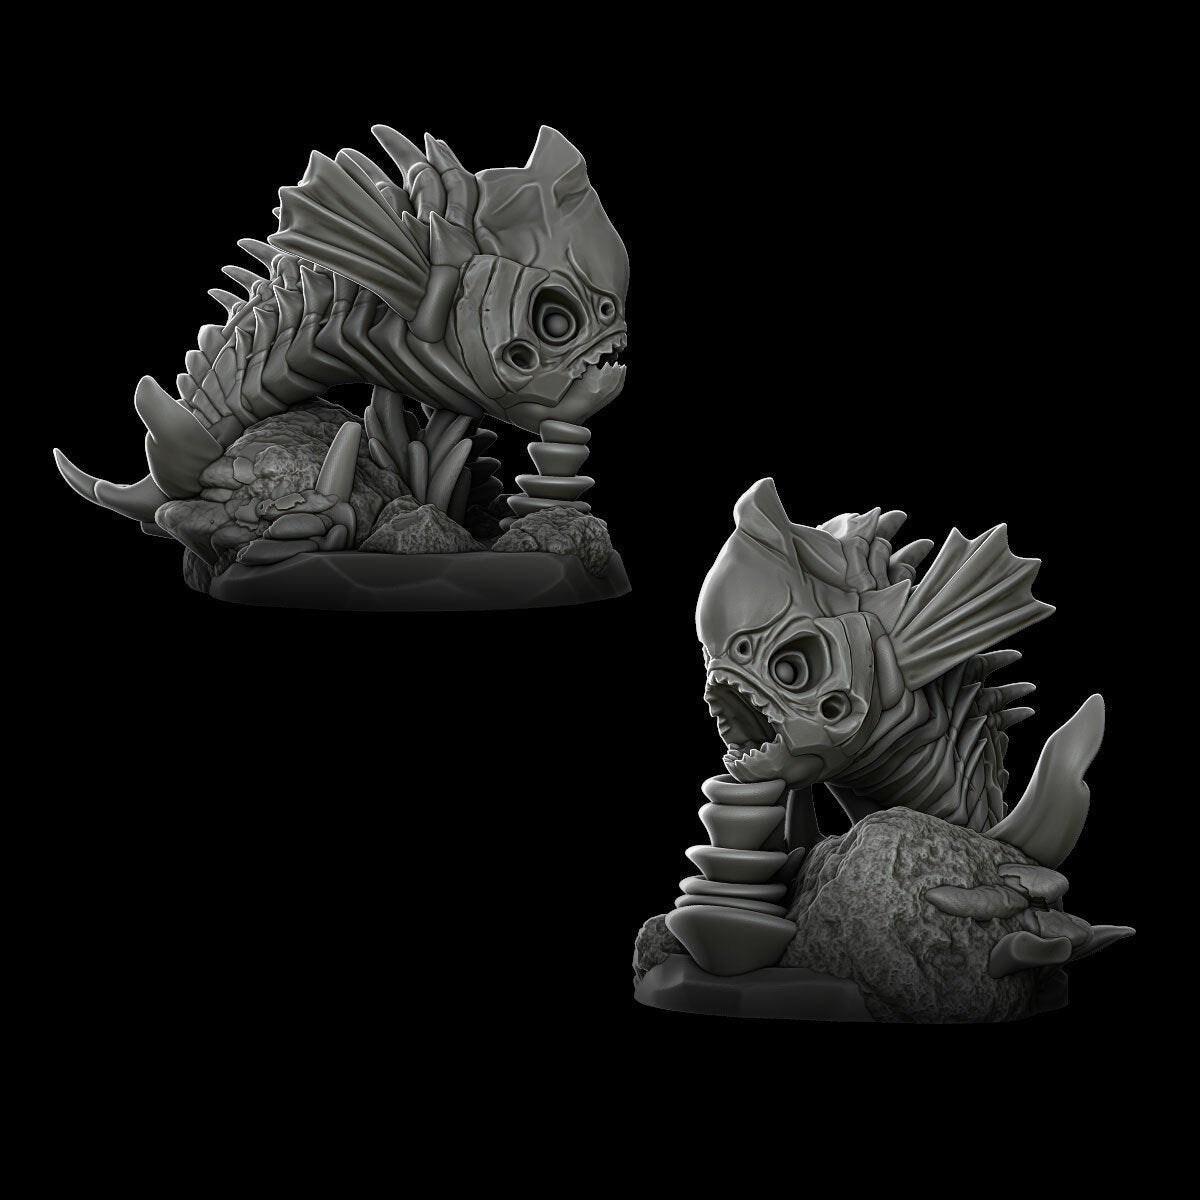 Bone Snappers - Wargaming Miniatures Monster Rocket Pig Games D&D, DnD, Pathfinder, SW Legion, Warhammer